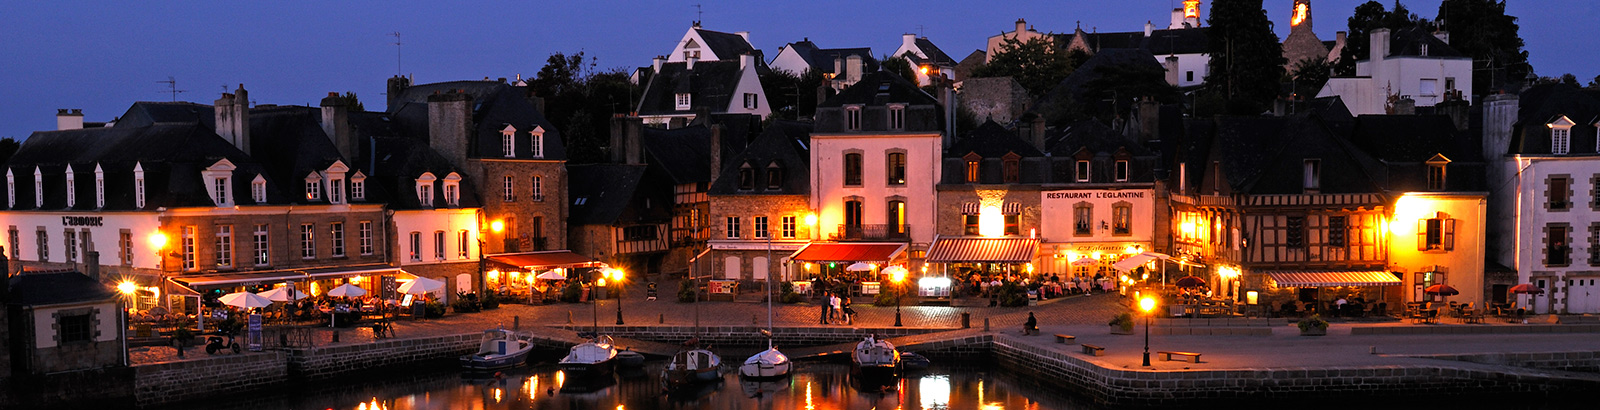 Auray, Town of Art and History, and the Old Harbour of Saint-Goustan